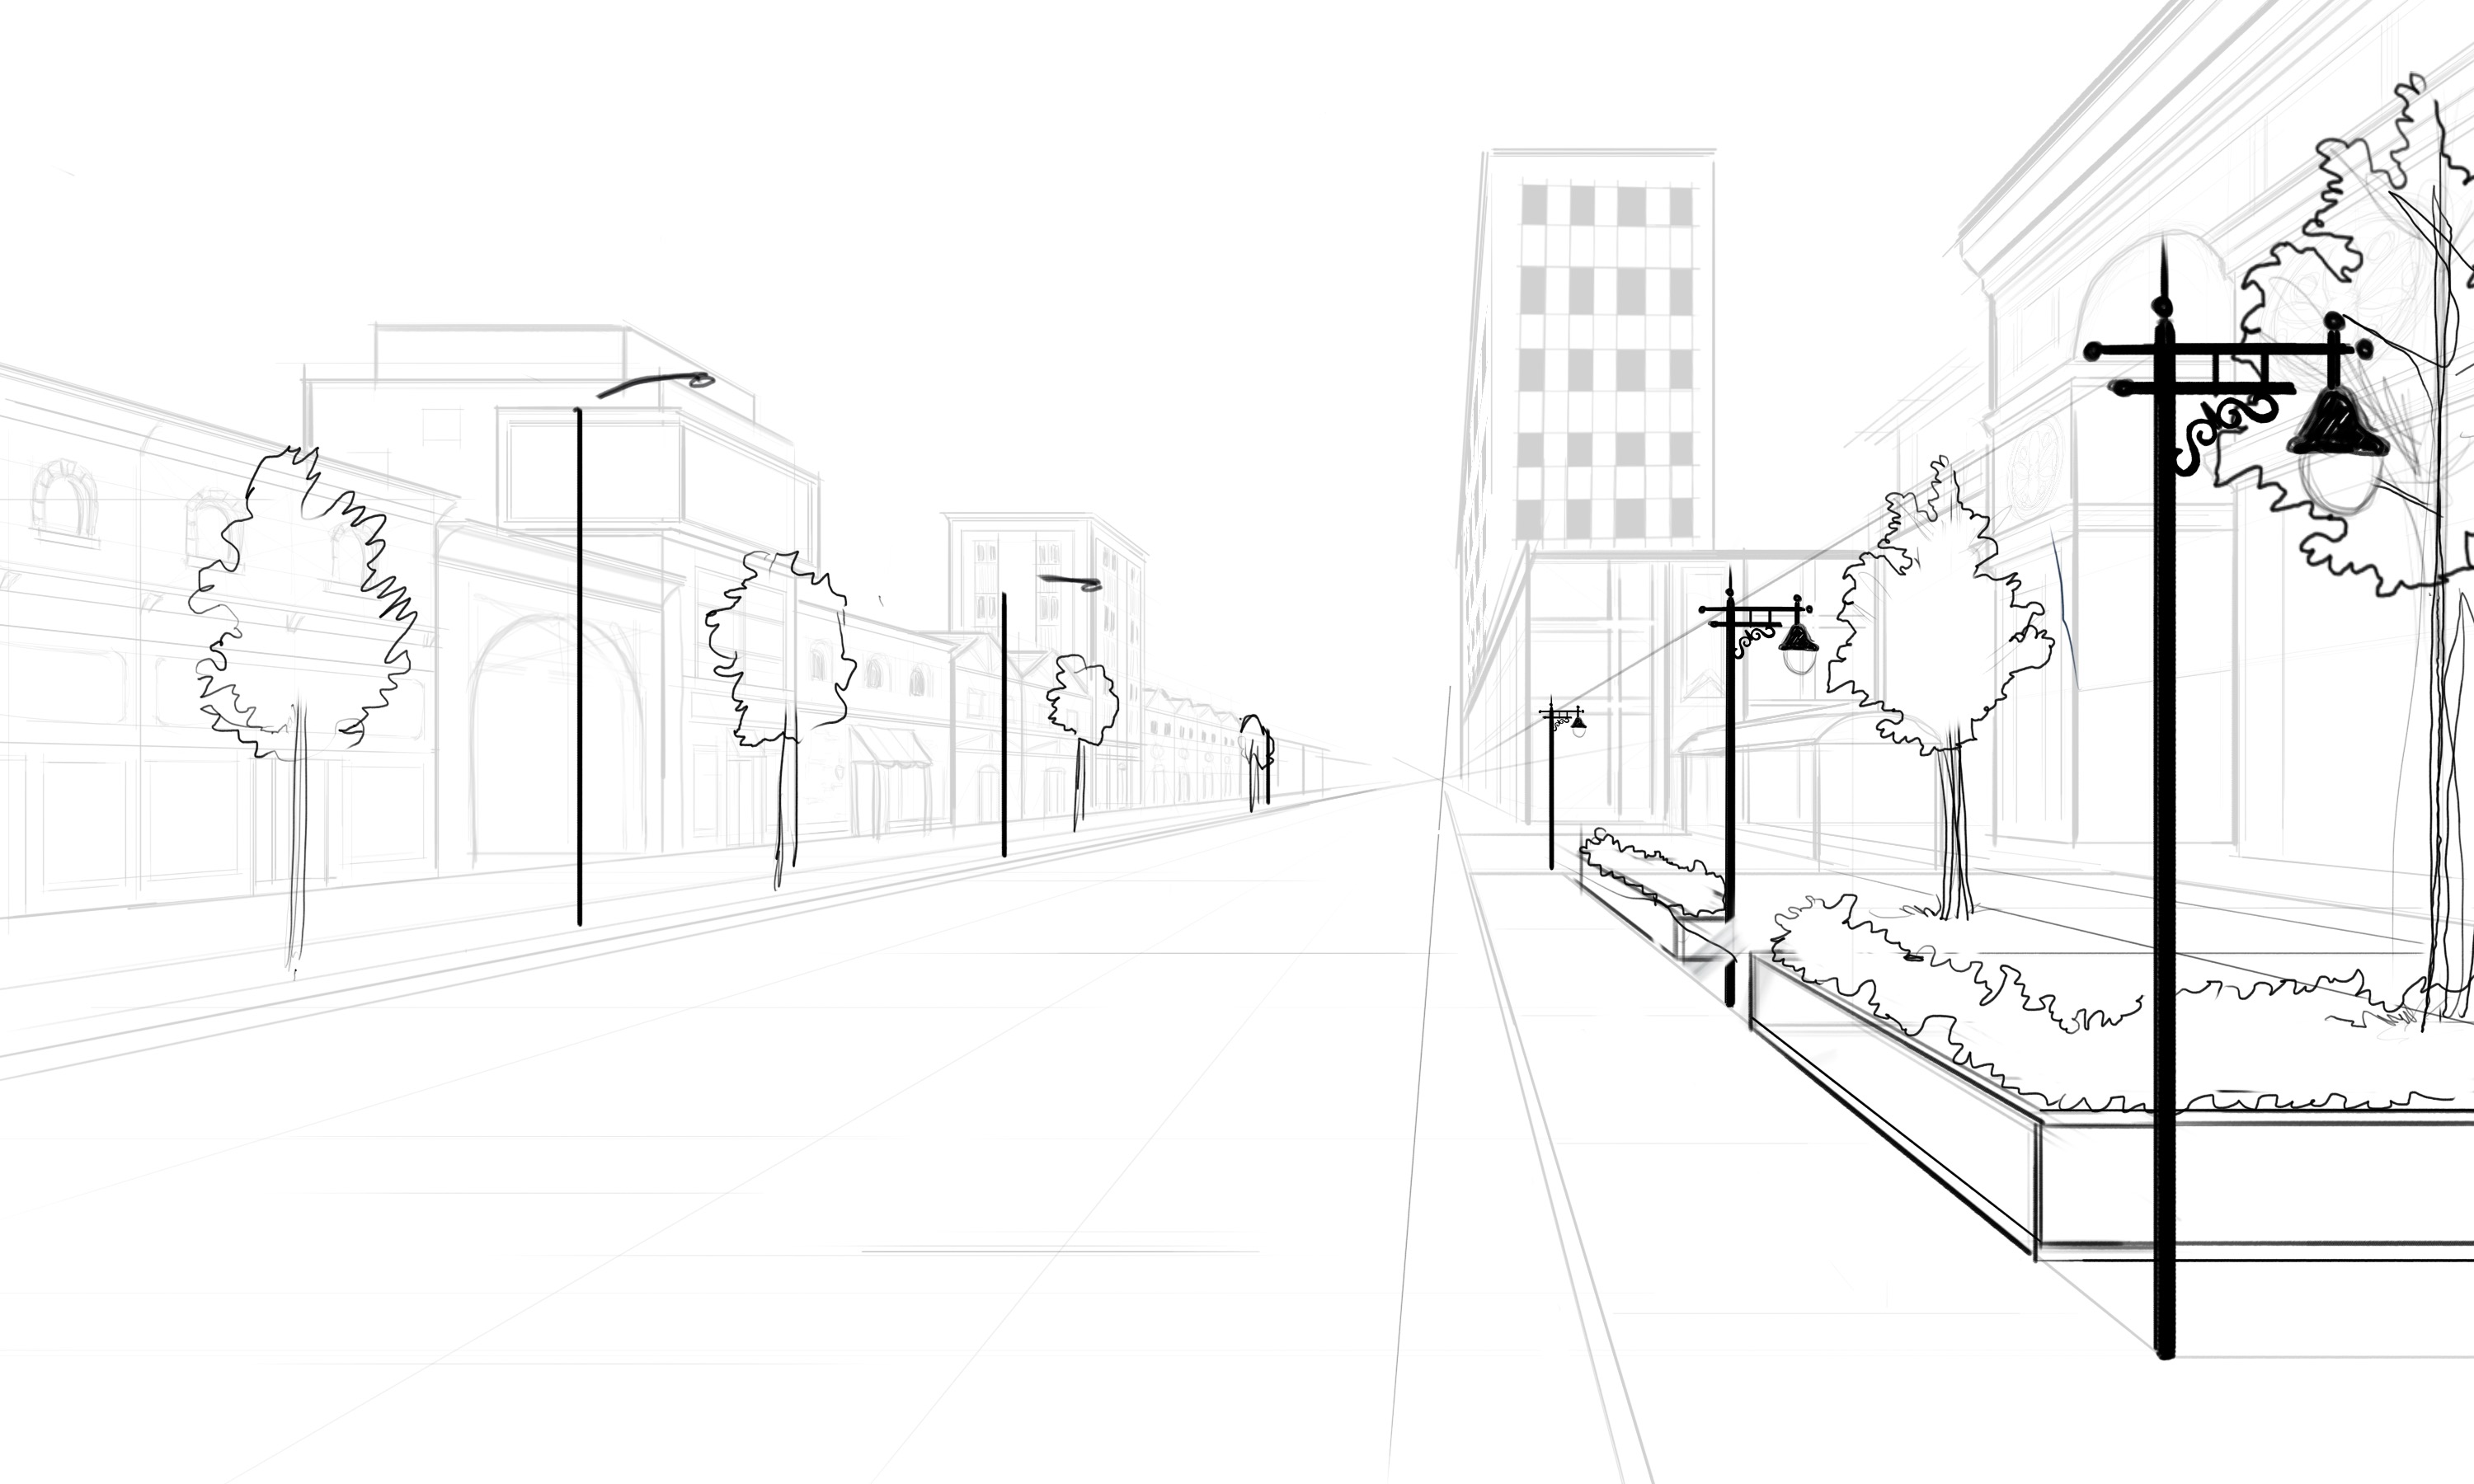 3000x1800 Drawn Scenery Street View